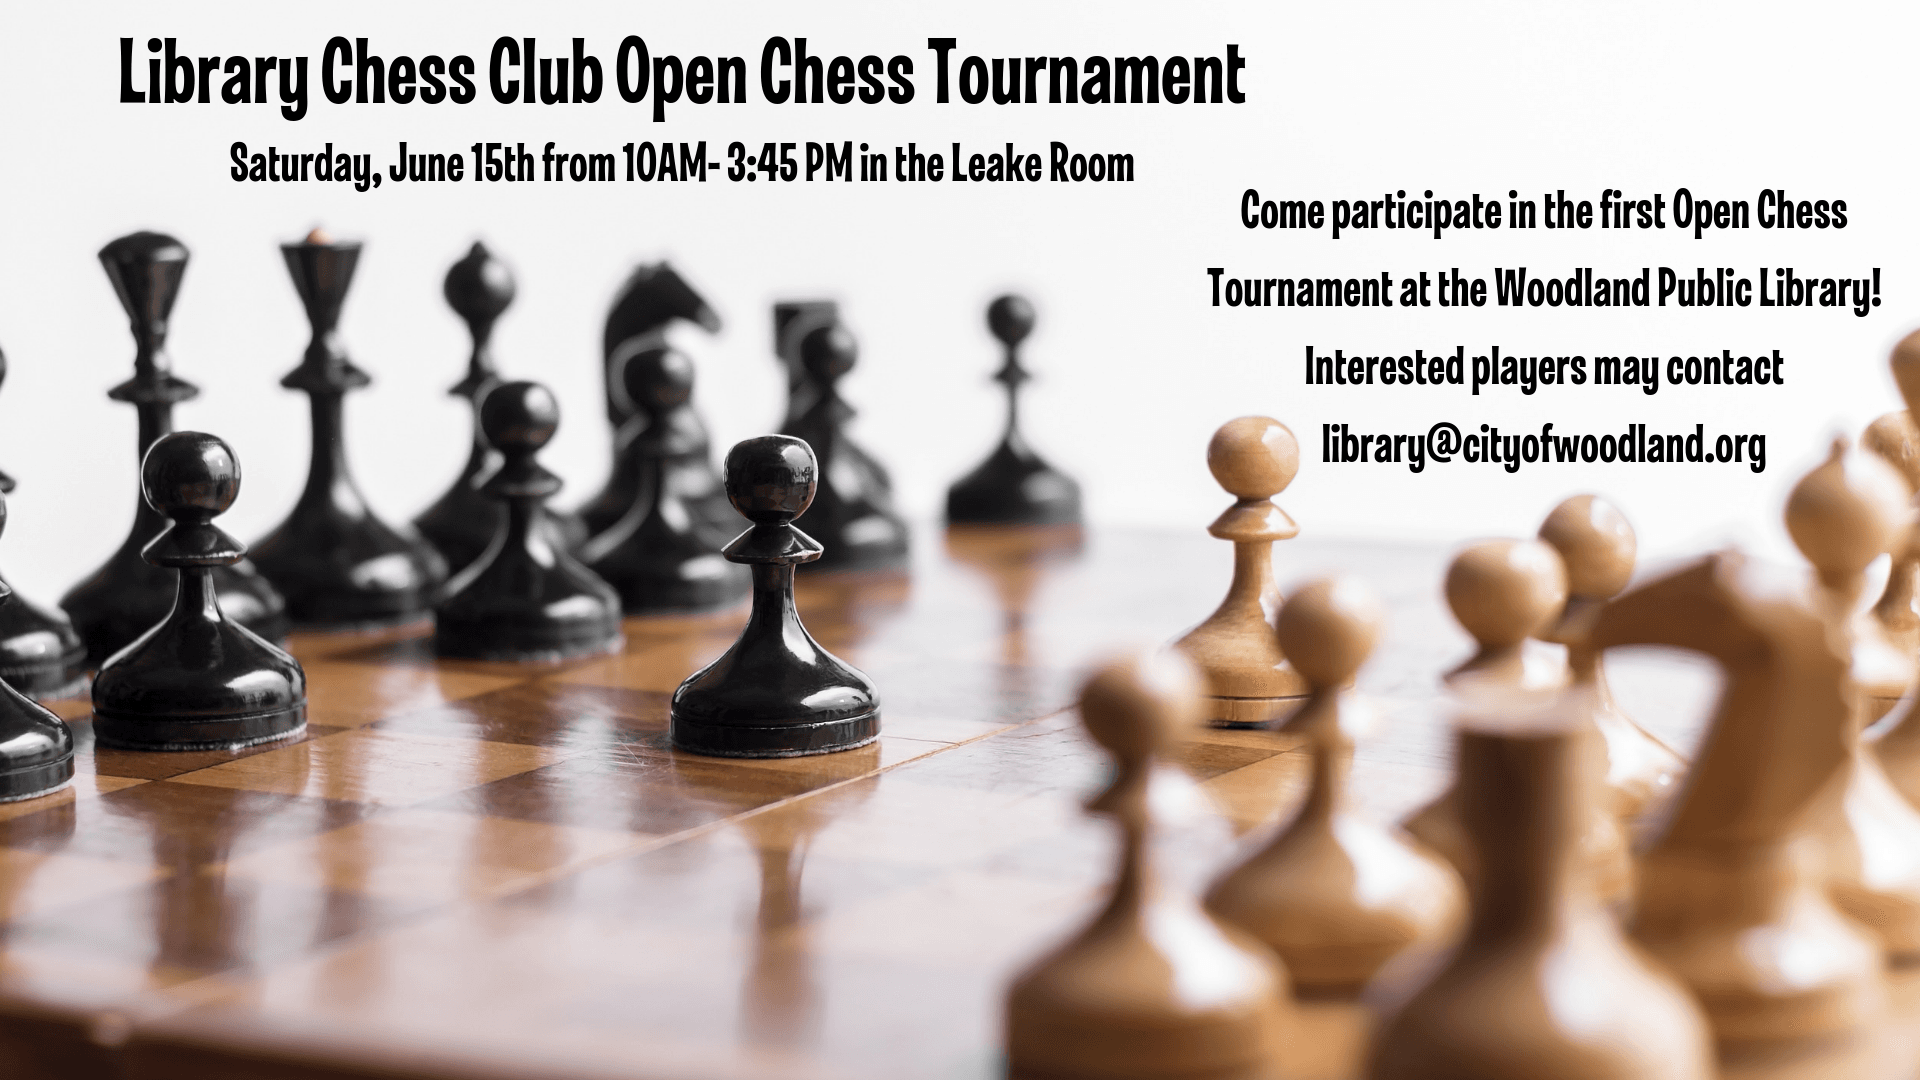 Library Chess Club Open Chess Tournament